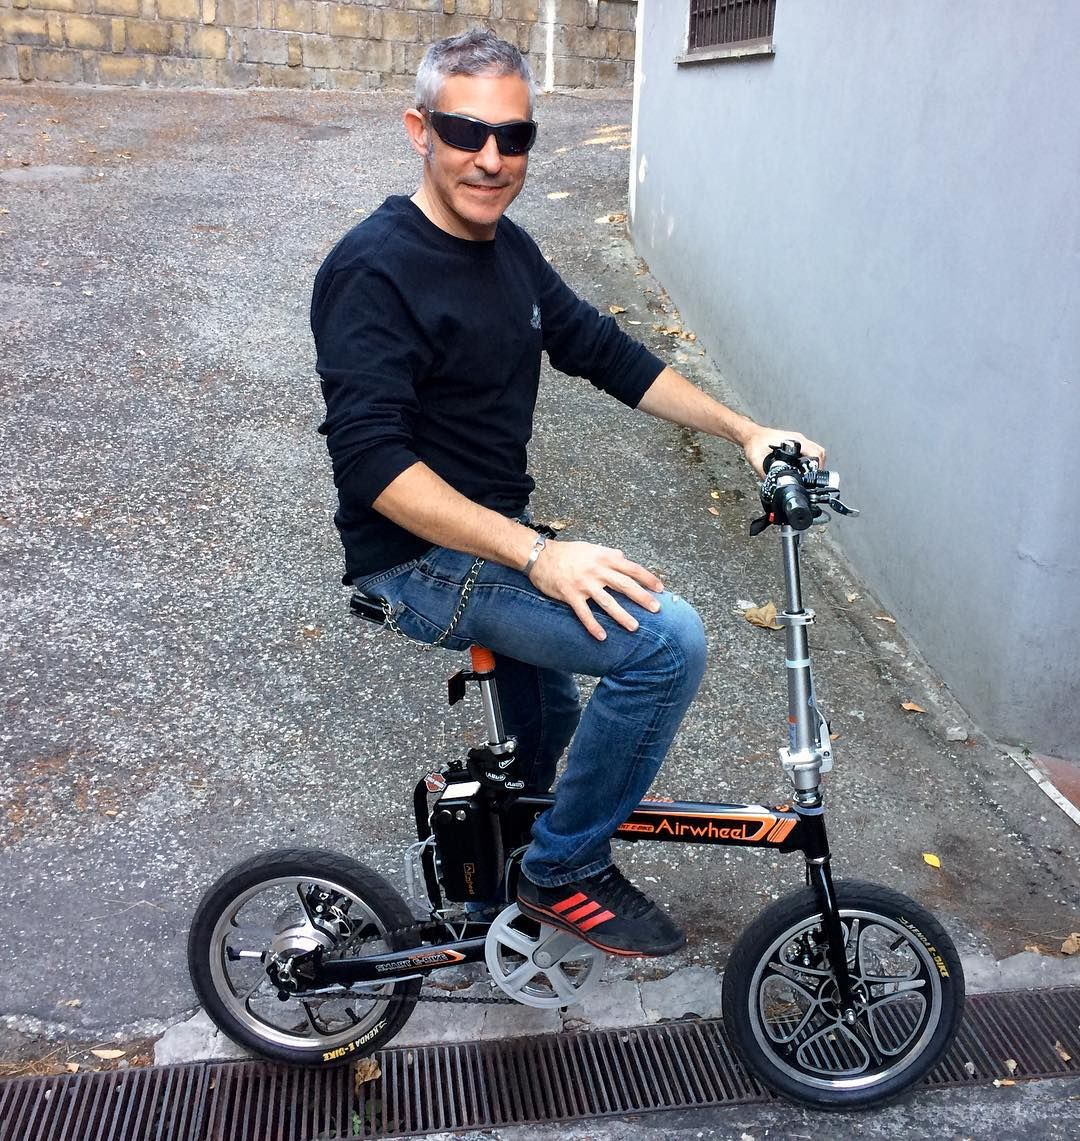 Fashionable Bodybuilding Style in 2017 Summer: Riding Airwheel R5 ...